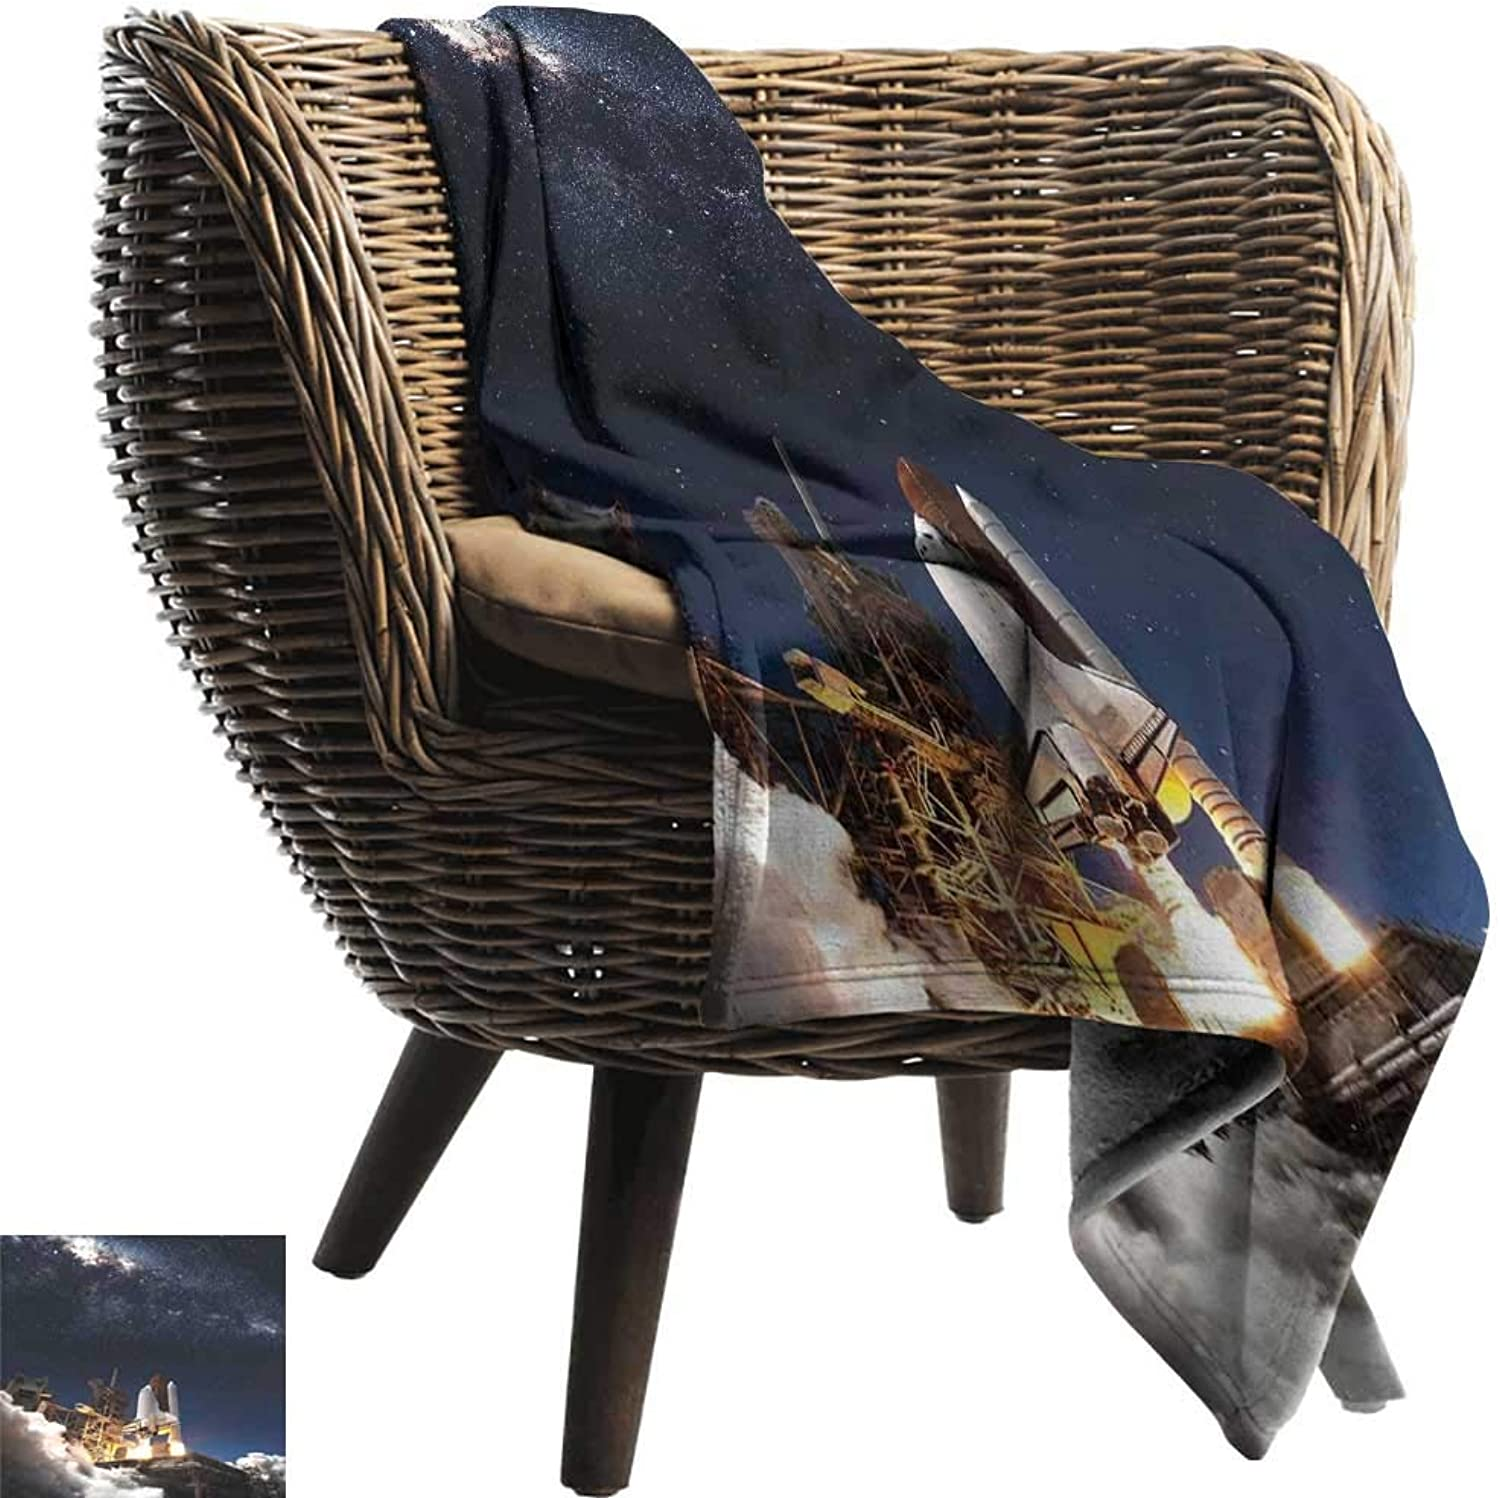 FCTBG Galaxy Anxiety Weighted Blanket for Adults Shuttle on Take Off Discovery Mission to Explore Galaxy Spaceship Solar Adventure